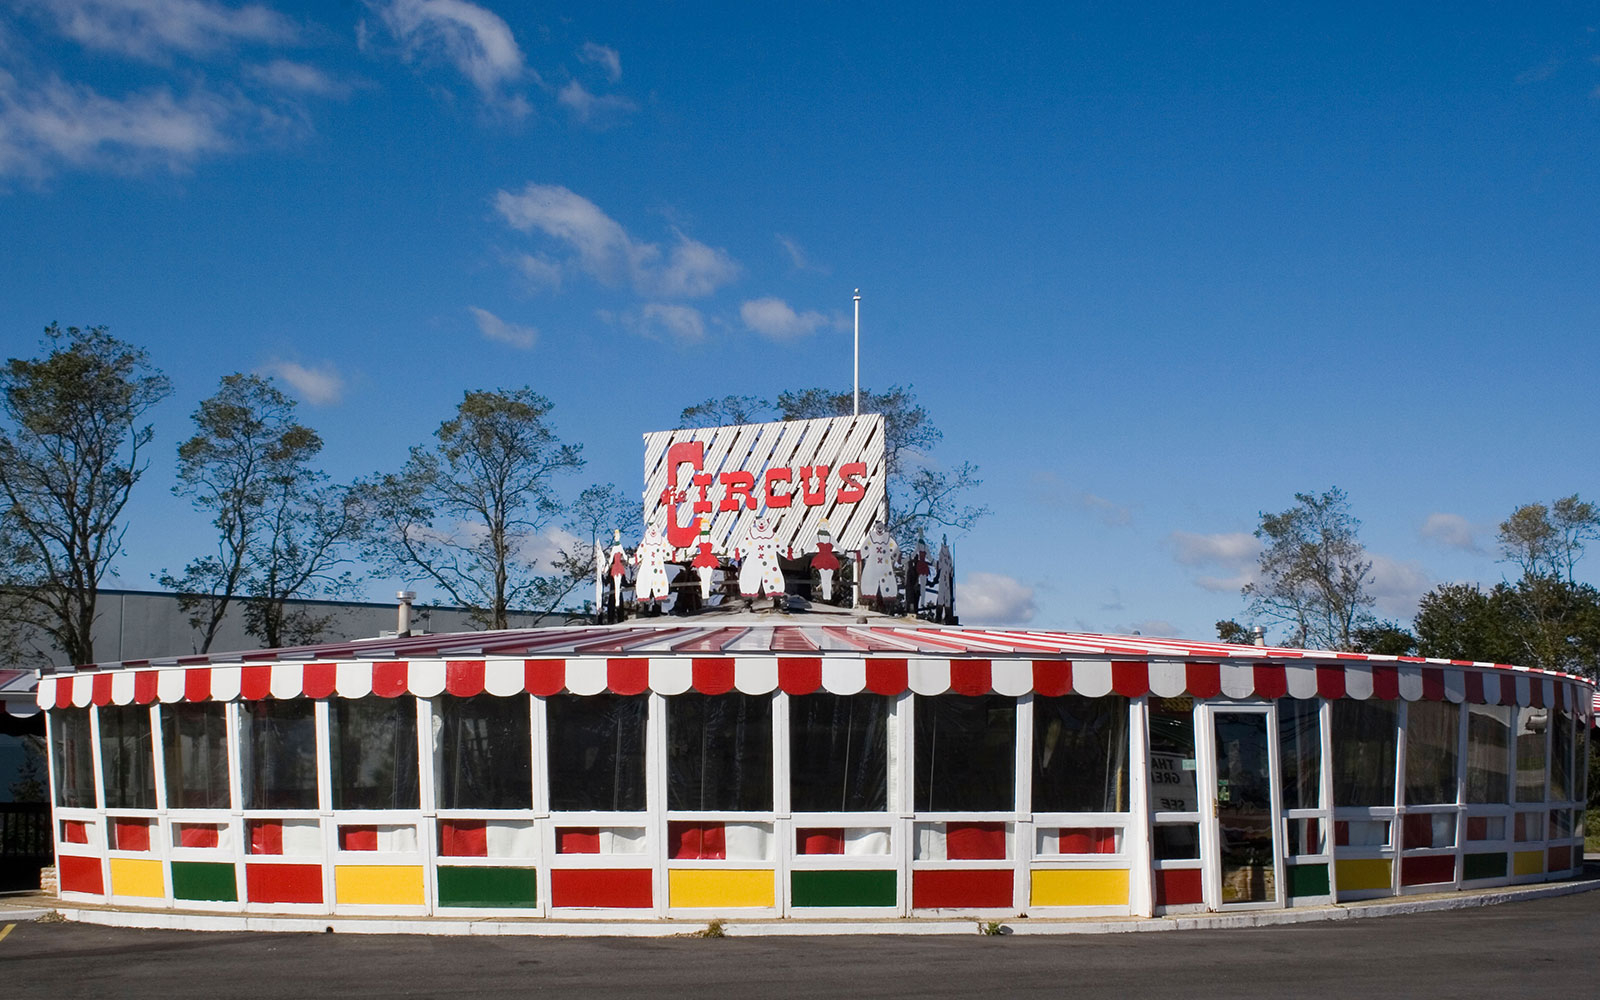 Circus Drive-In in Wall Township